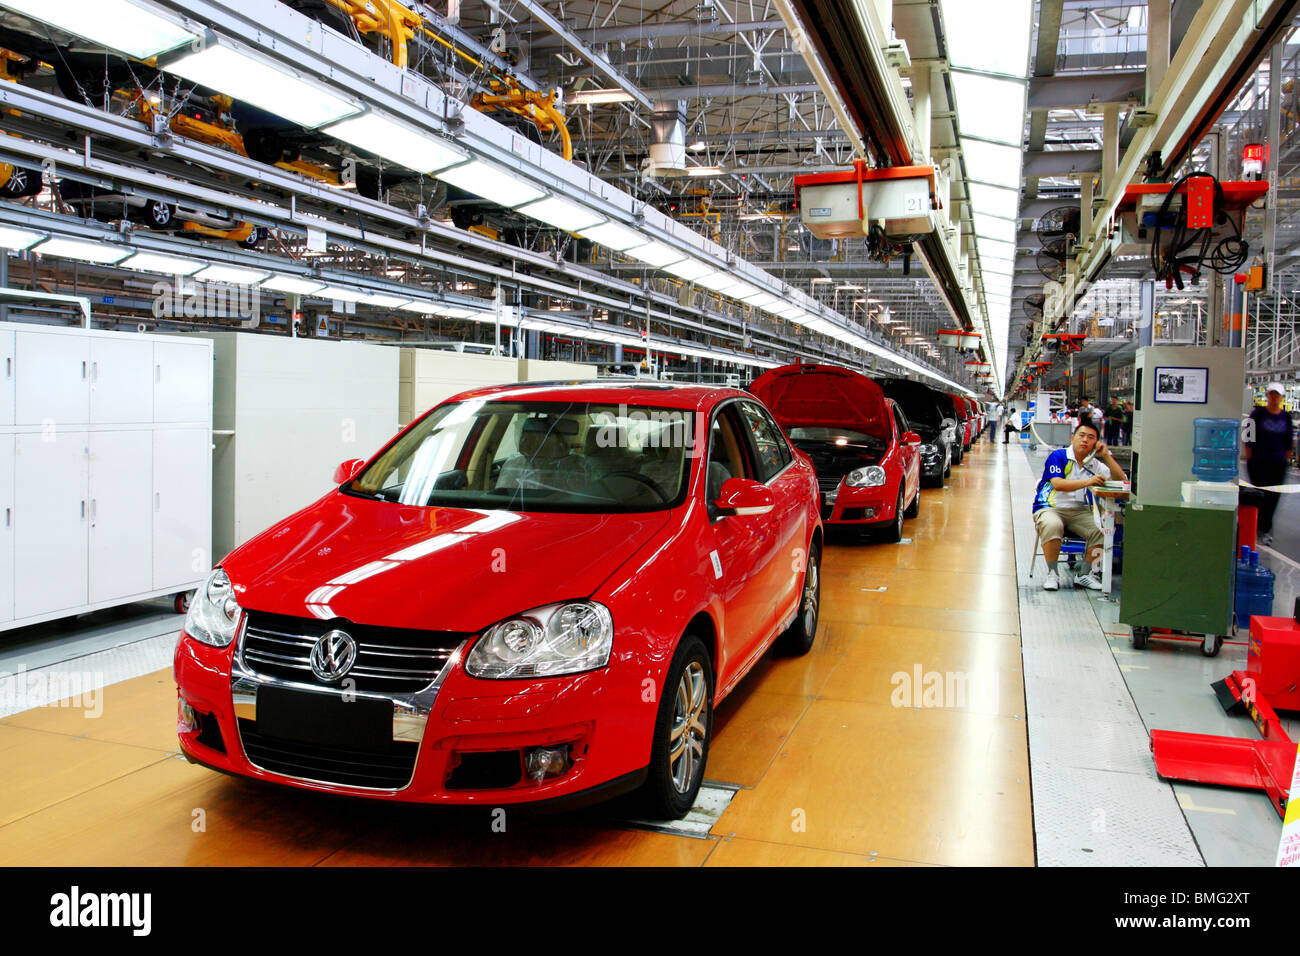 Cars on assembly line, First Automobile Works, Changchun, Jilin ...